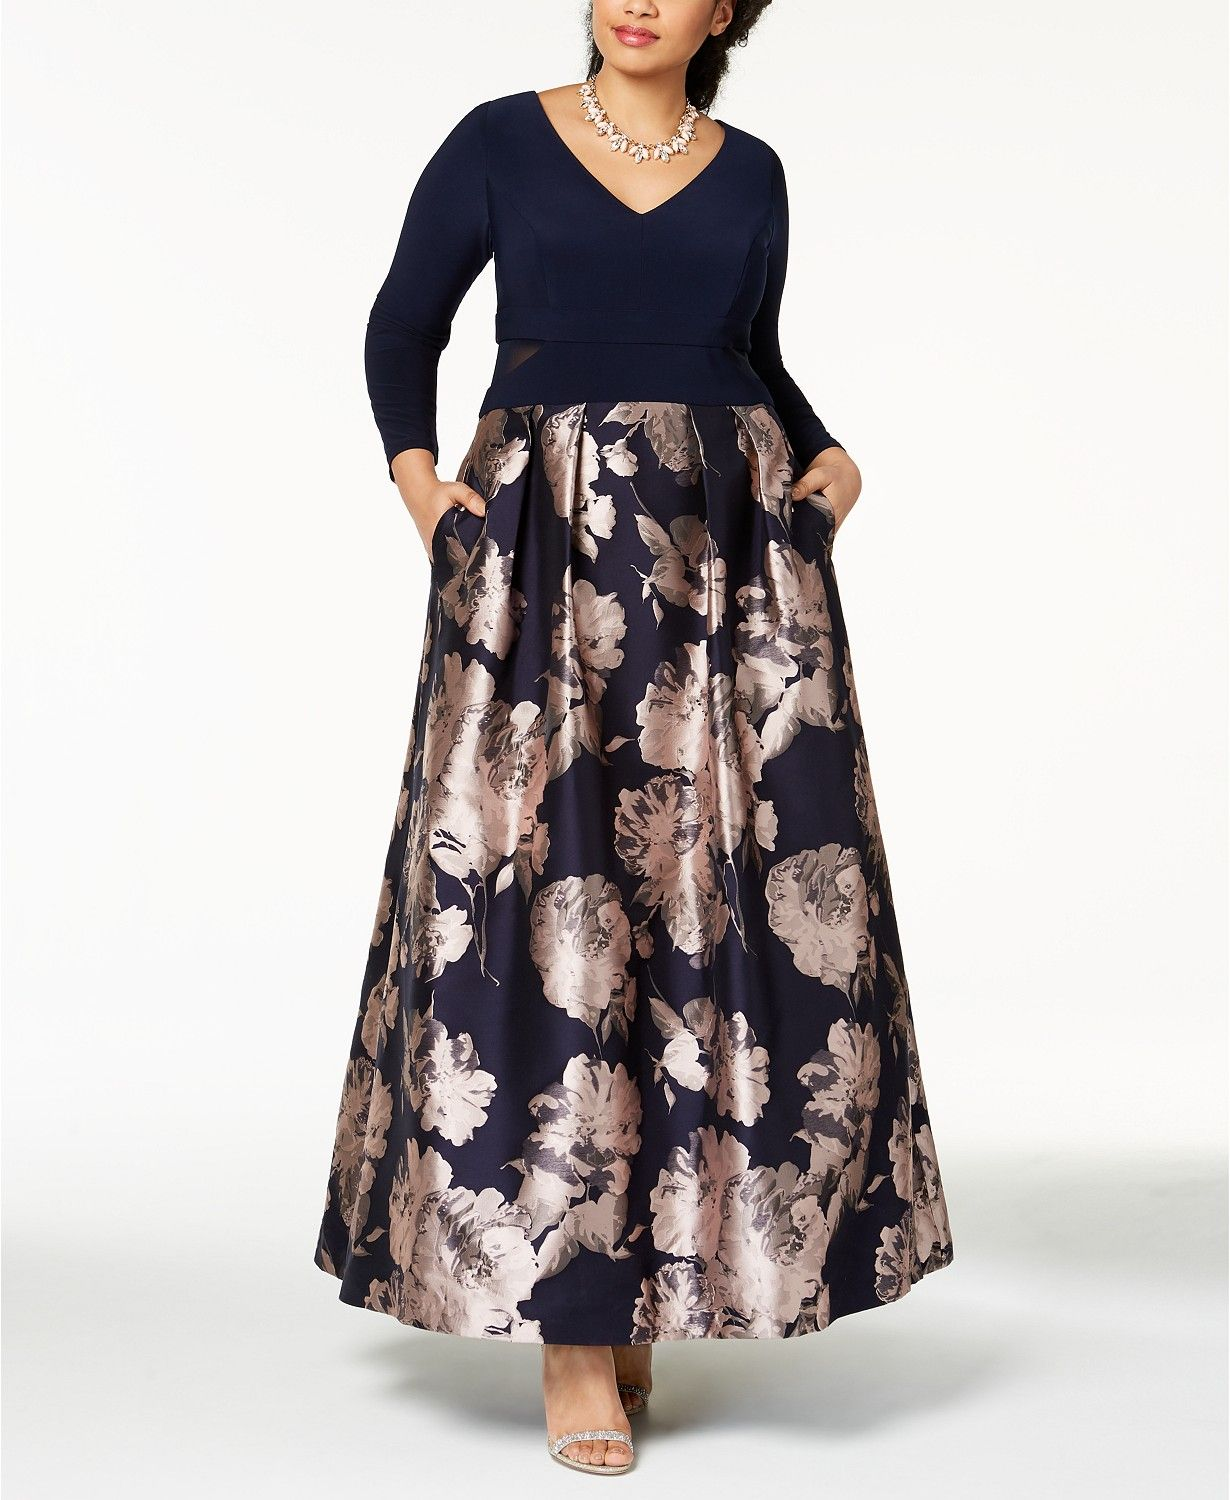 Xscape Plus Size Illusion Brocade Ball Gown - Dresses ...